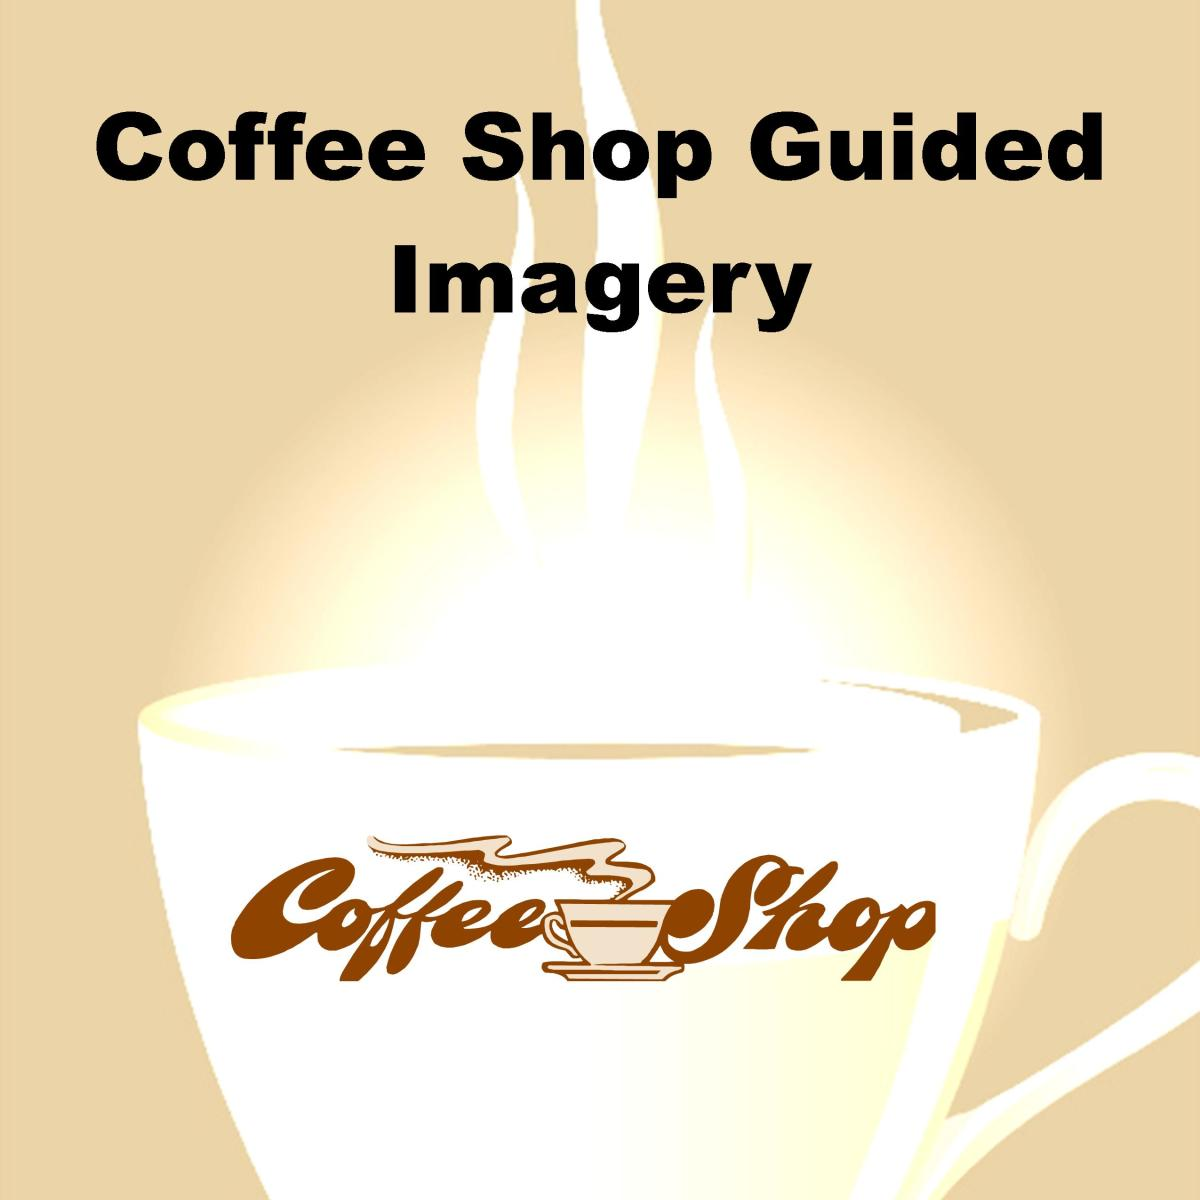 Even a coffee shop can be the subject of a guided imagery session.